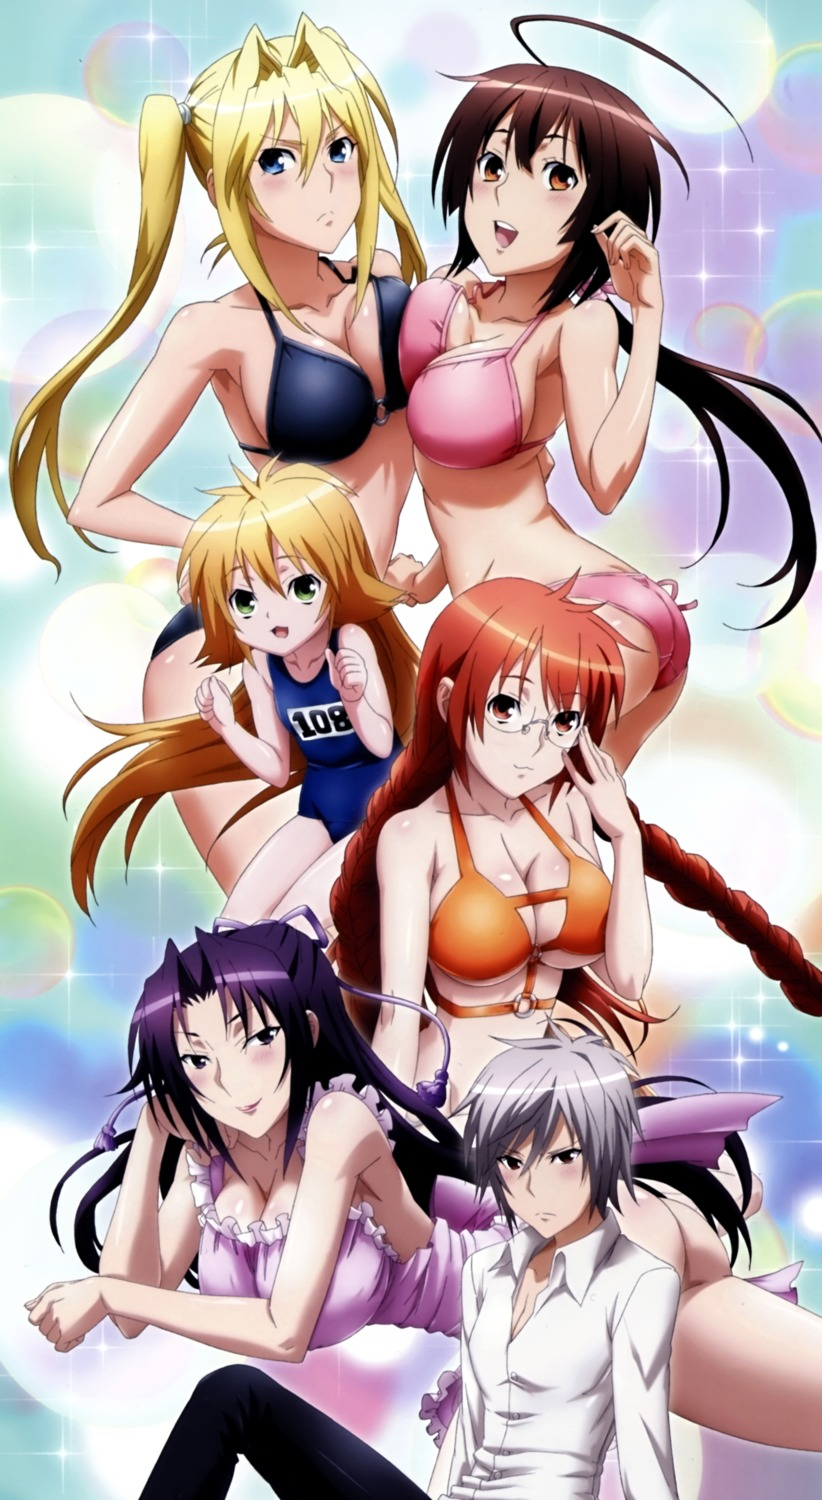 bikini homura kazehana kusano matsu megane musubi overfiltered scanning_resolution school_swimsuit sekirei swimsuits tsukiumi